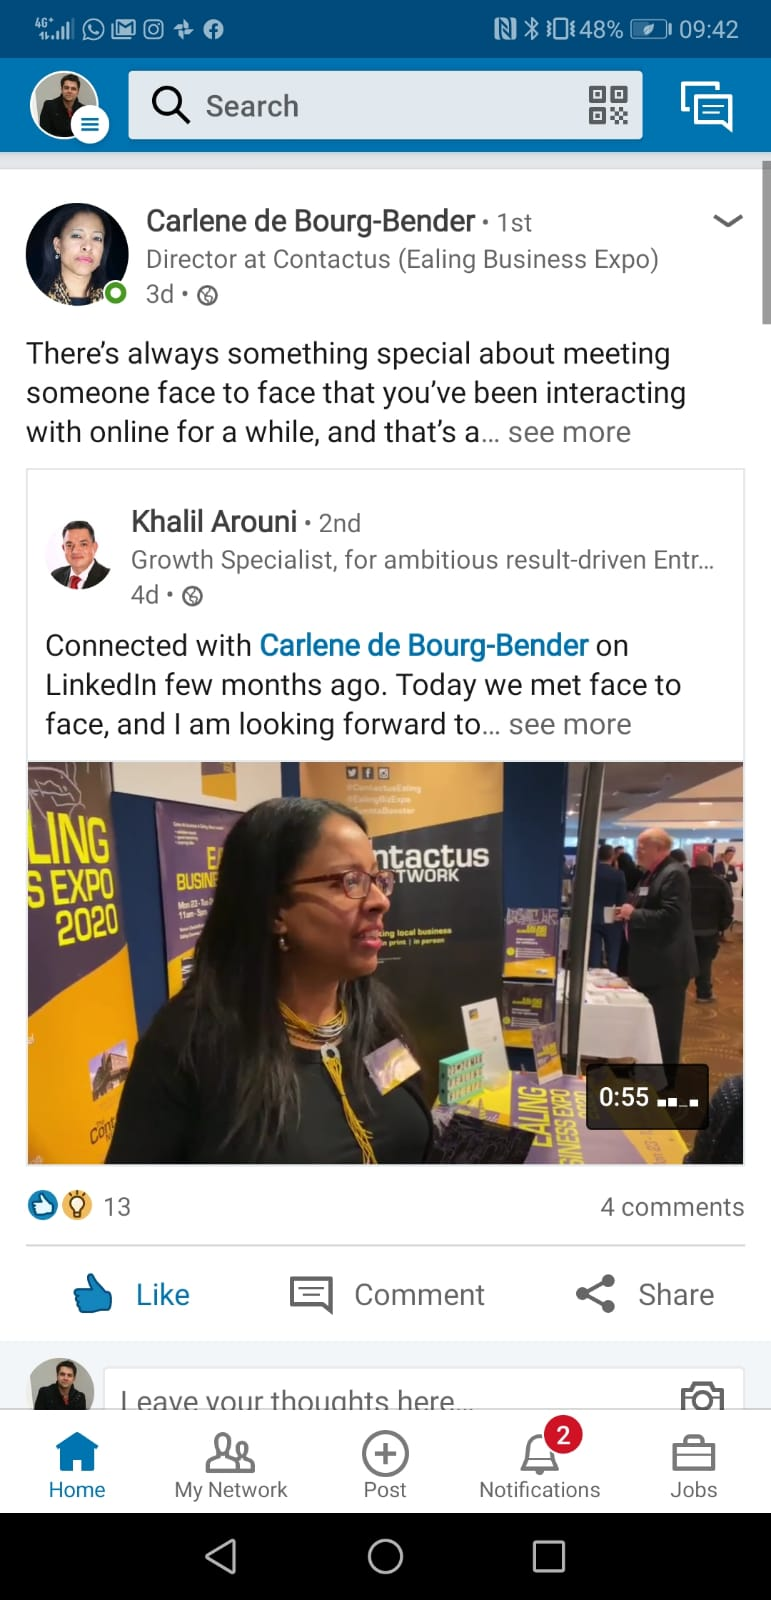 LinkedIn 101: How To Grow Your Network 18